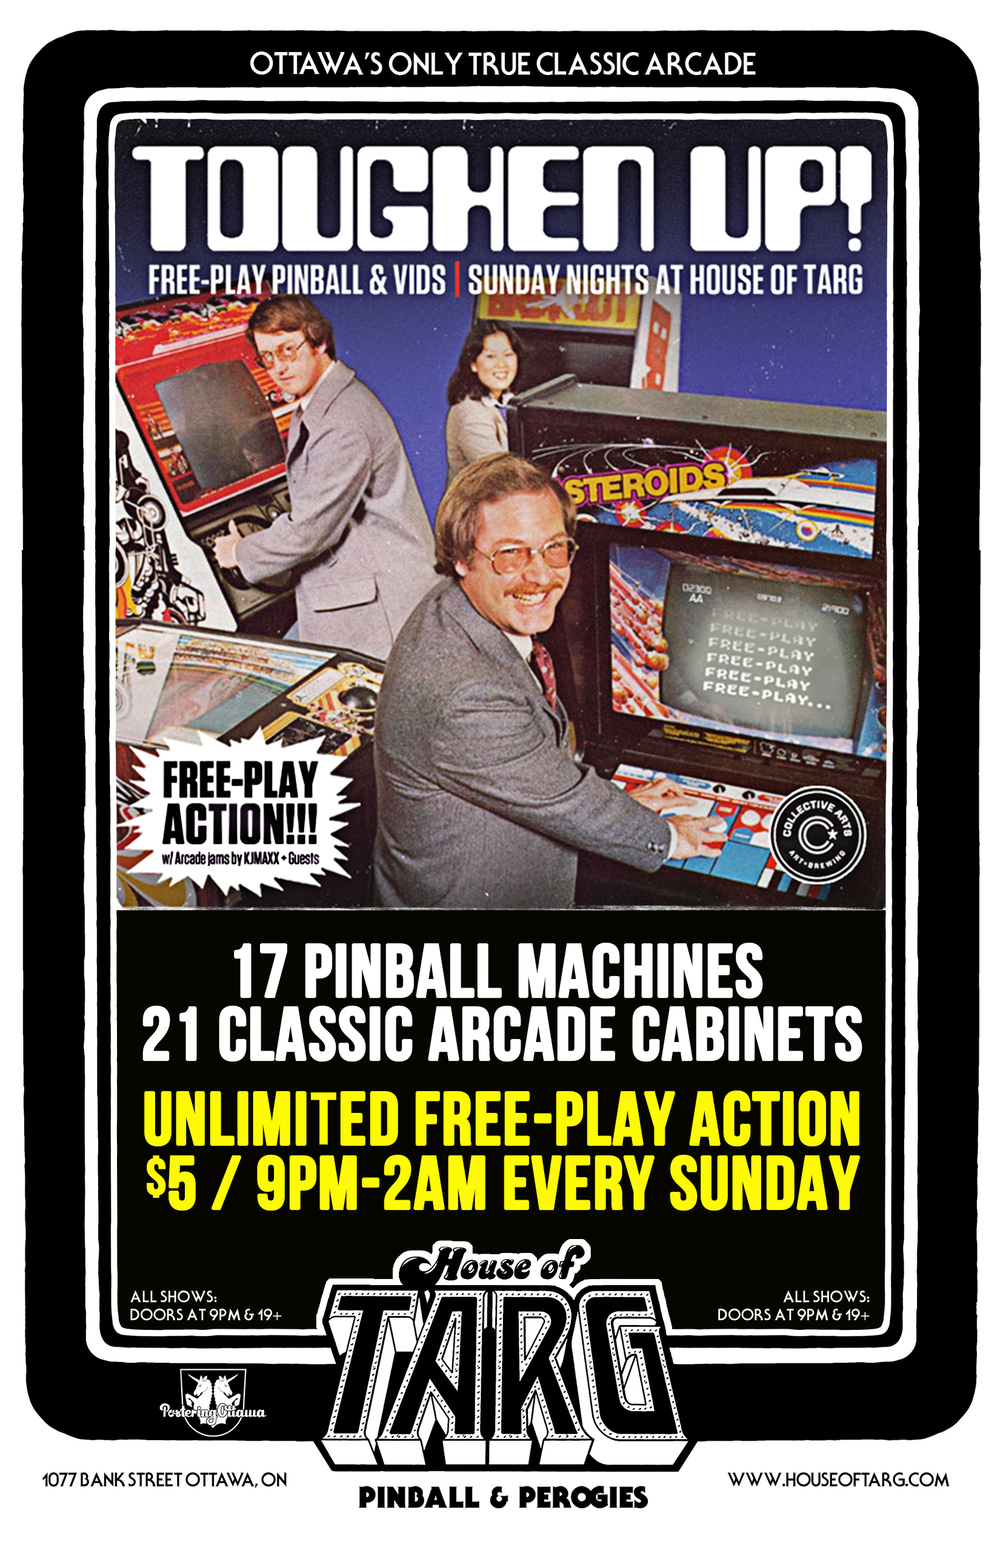 If you are 19+ bring your dad to Free-Play Sunday after 9pm & he gets in for FREE!